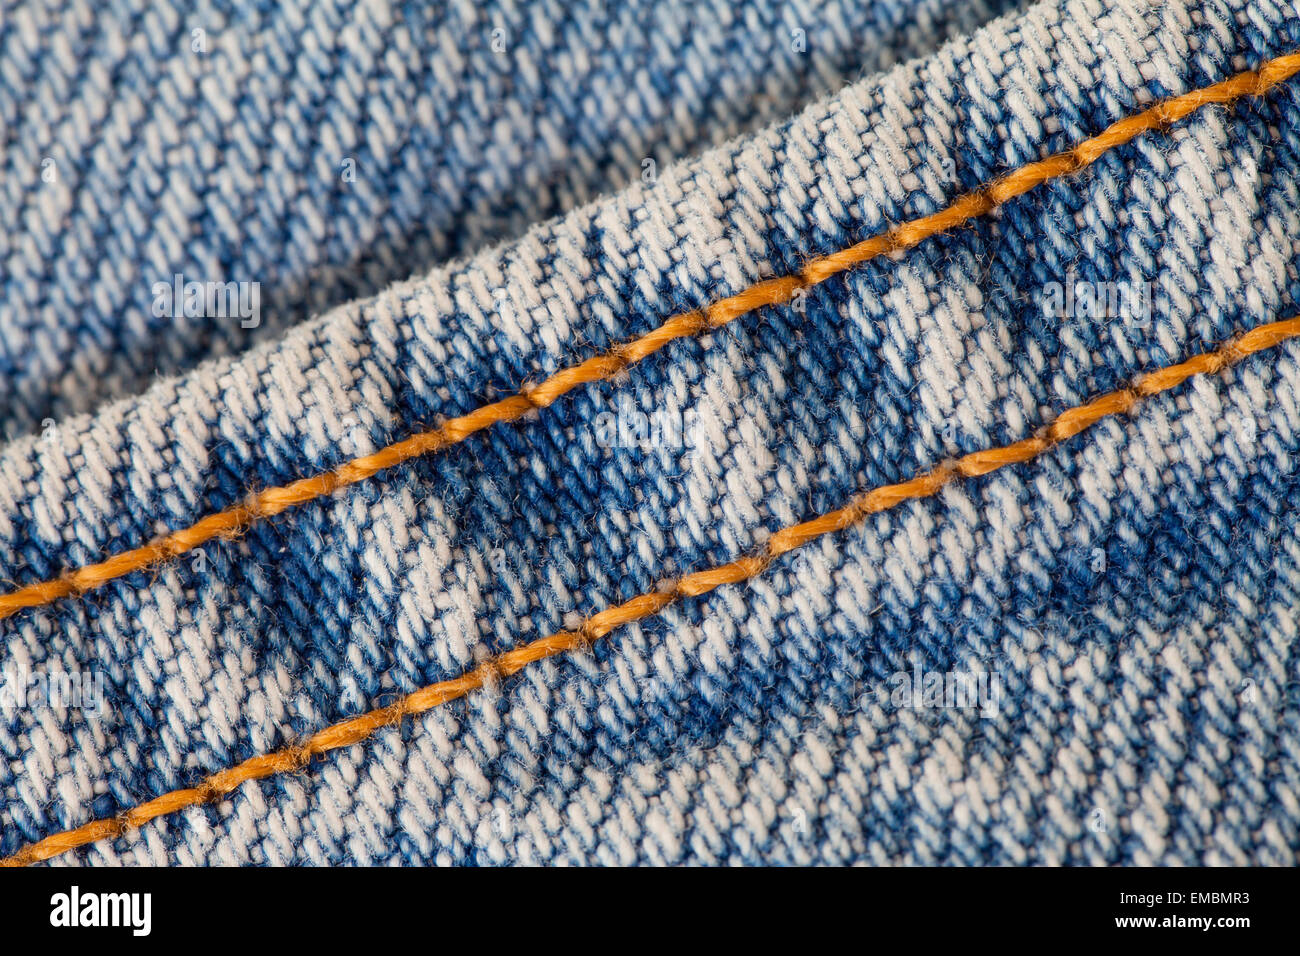 Seam on blue jean denim fabric - Stock Image